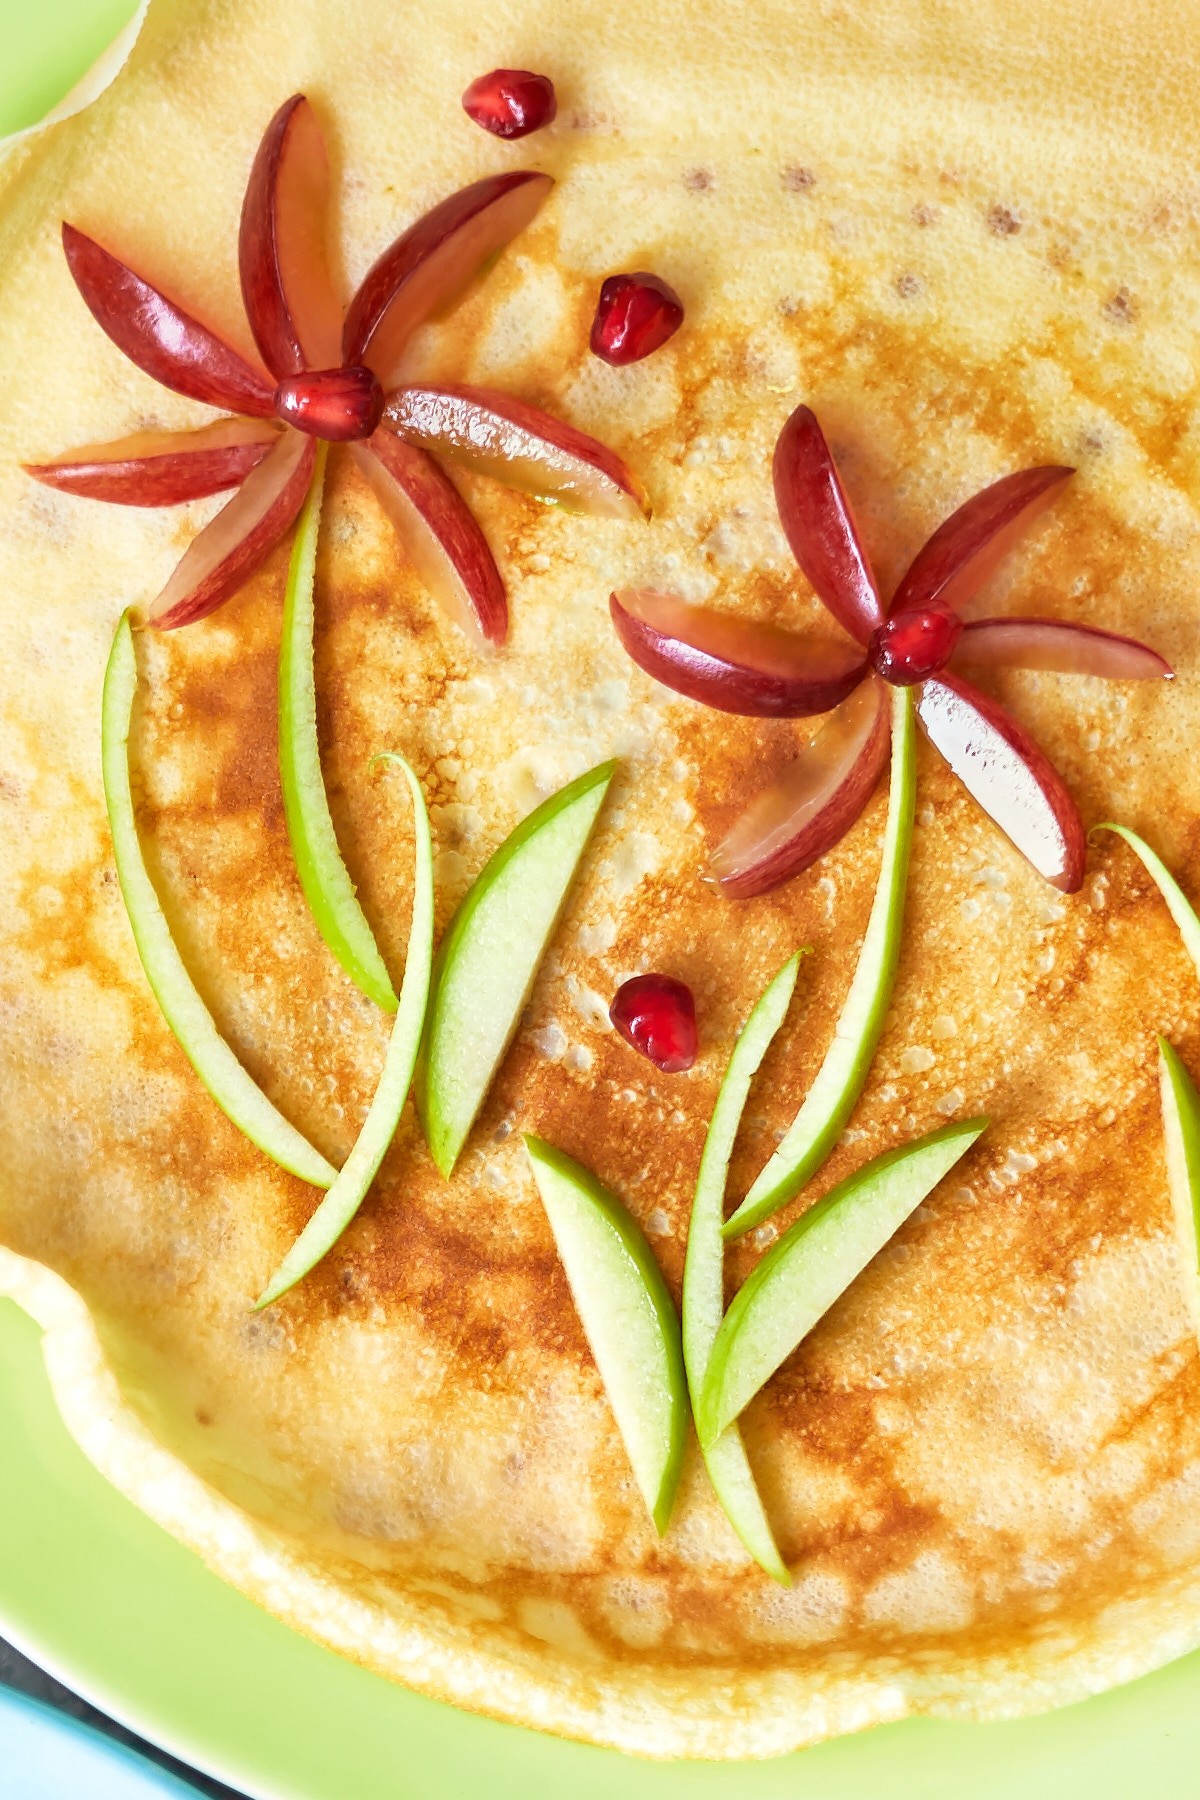 A crepe-style pancake is decorated with fruit to resemble flowers.